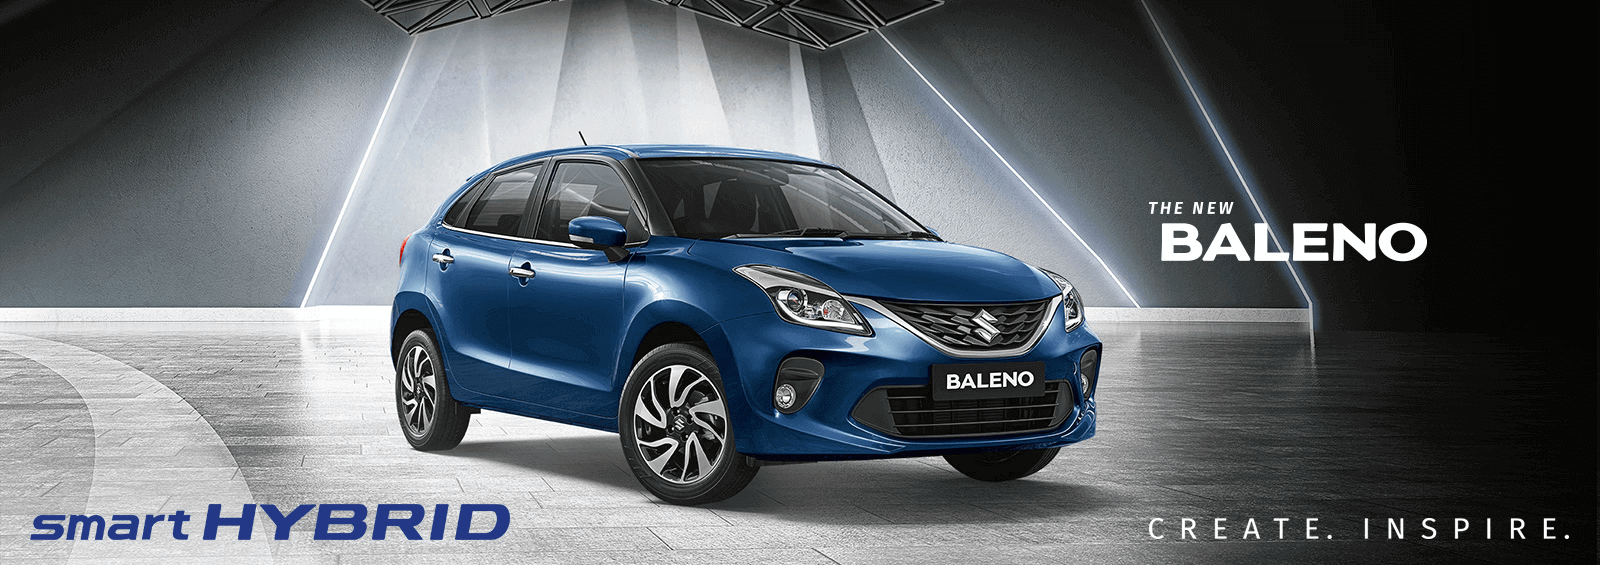 Baleno-Desktop-Banner Pasco Automobiles MG Road, Gurgaon